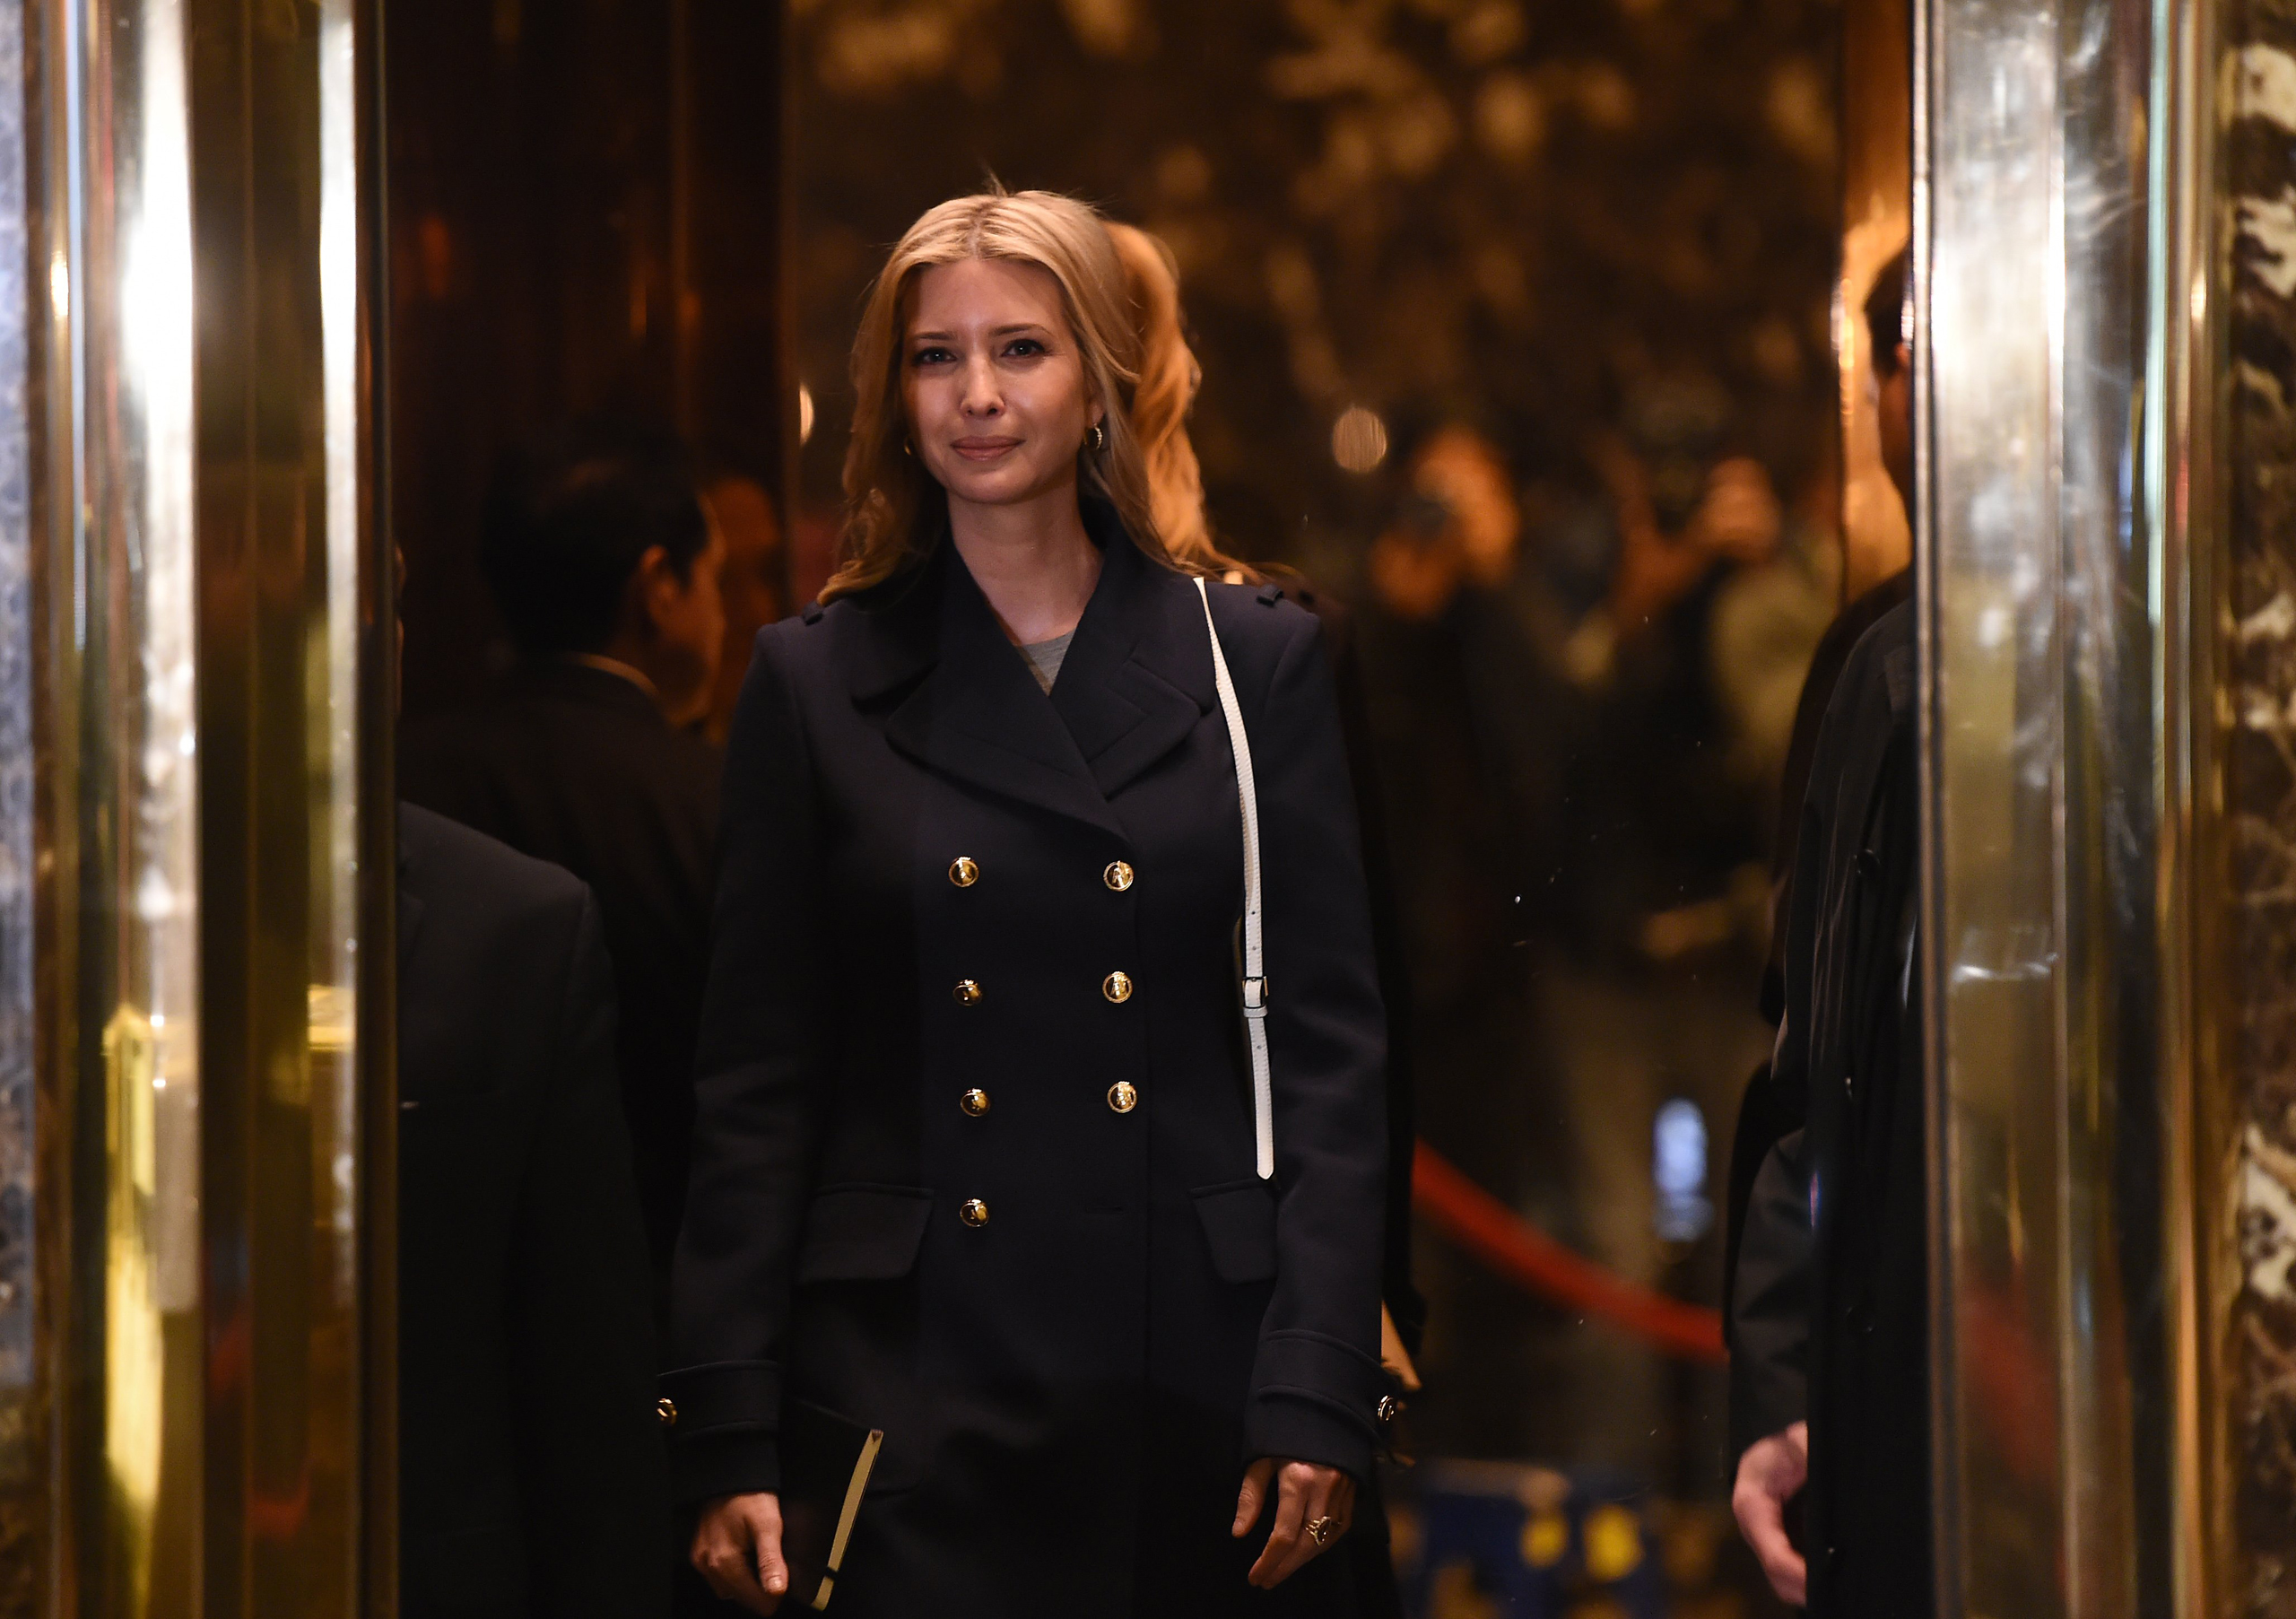 Ivanka Trump, daughter and part of the executive committee of US President-elect Donald Trump's transition team arrives at Trump Tower on another day of meetings on Nov. 21, 2016.